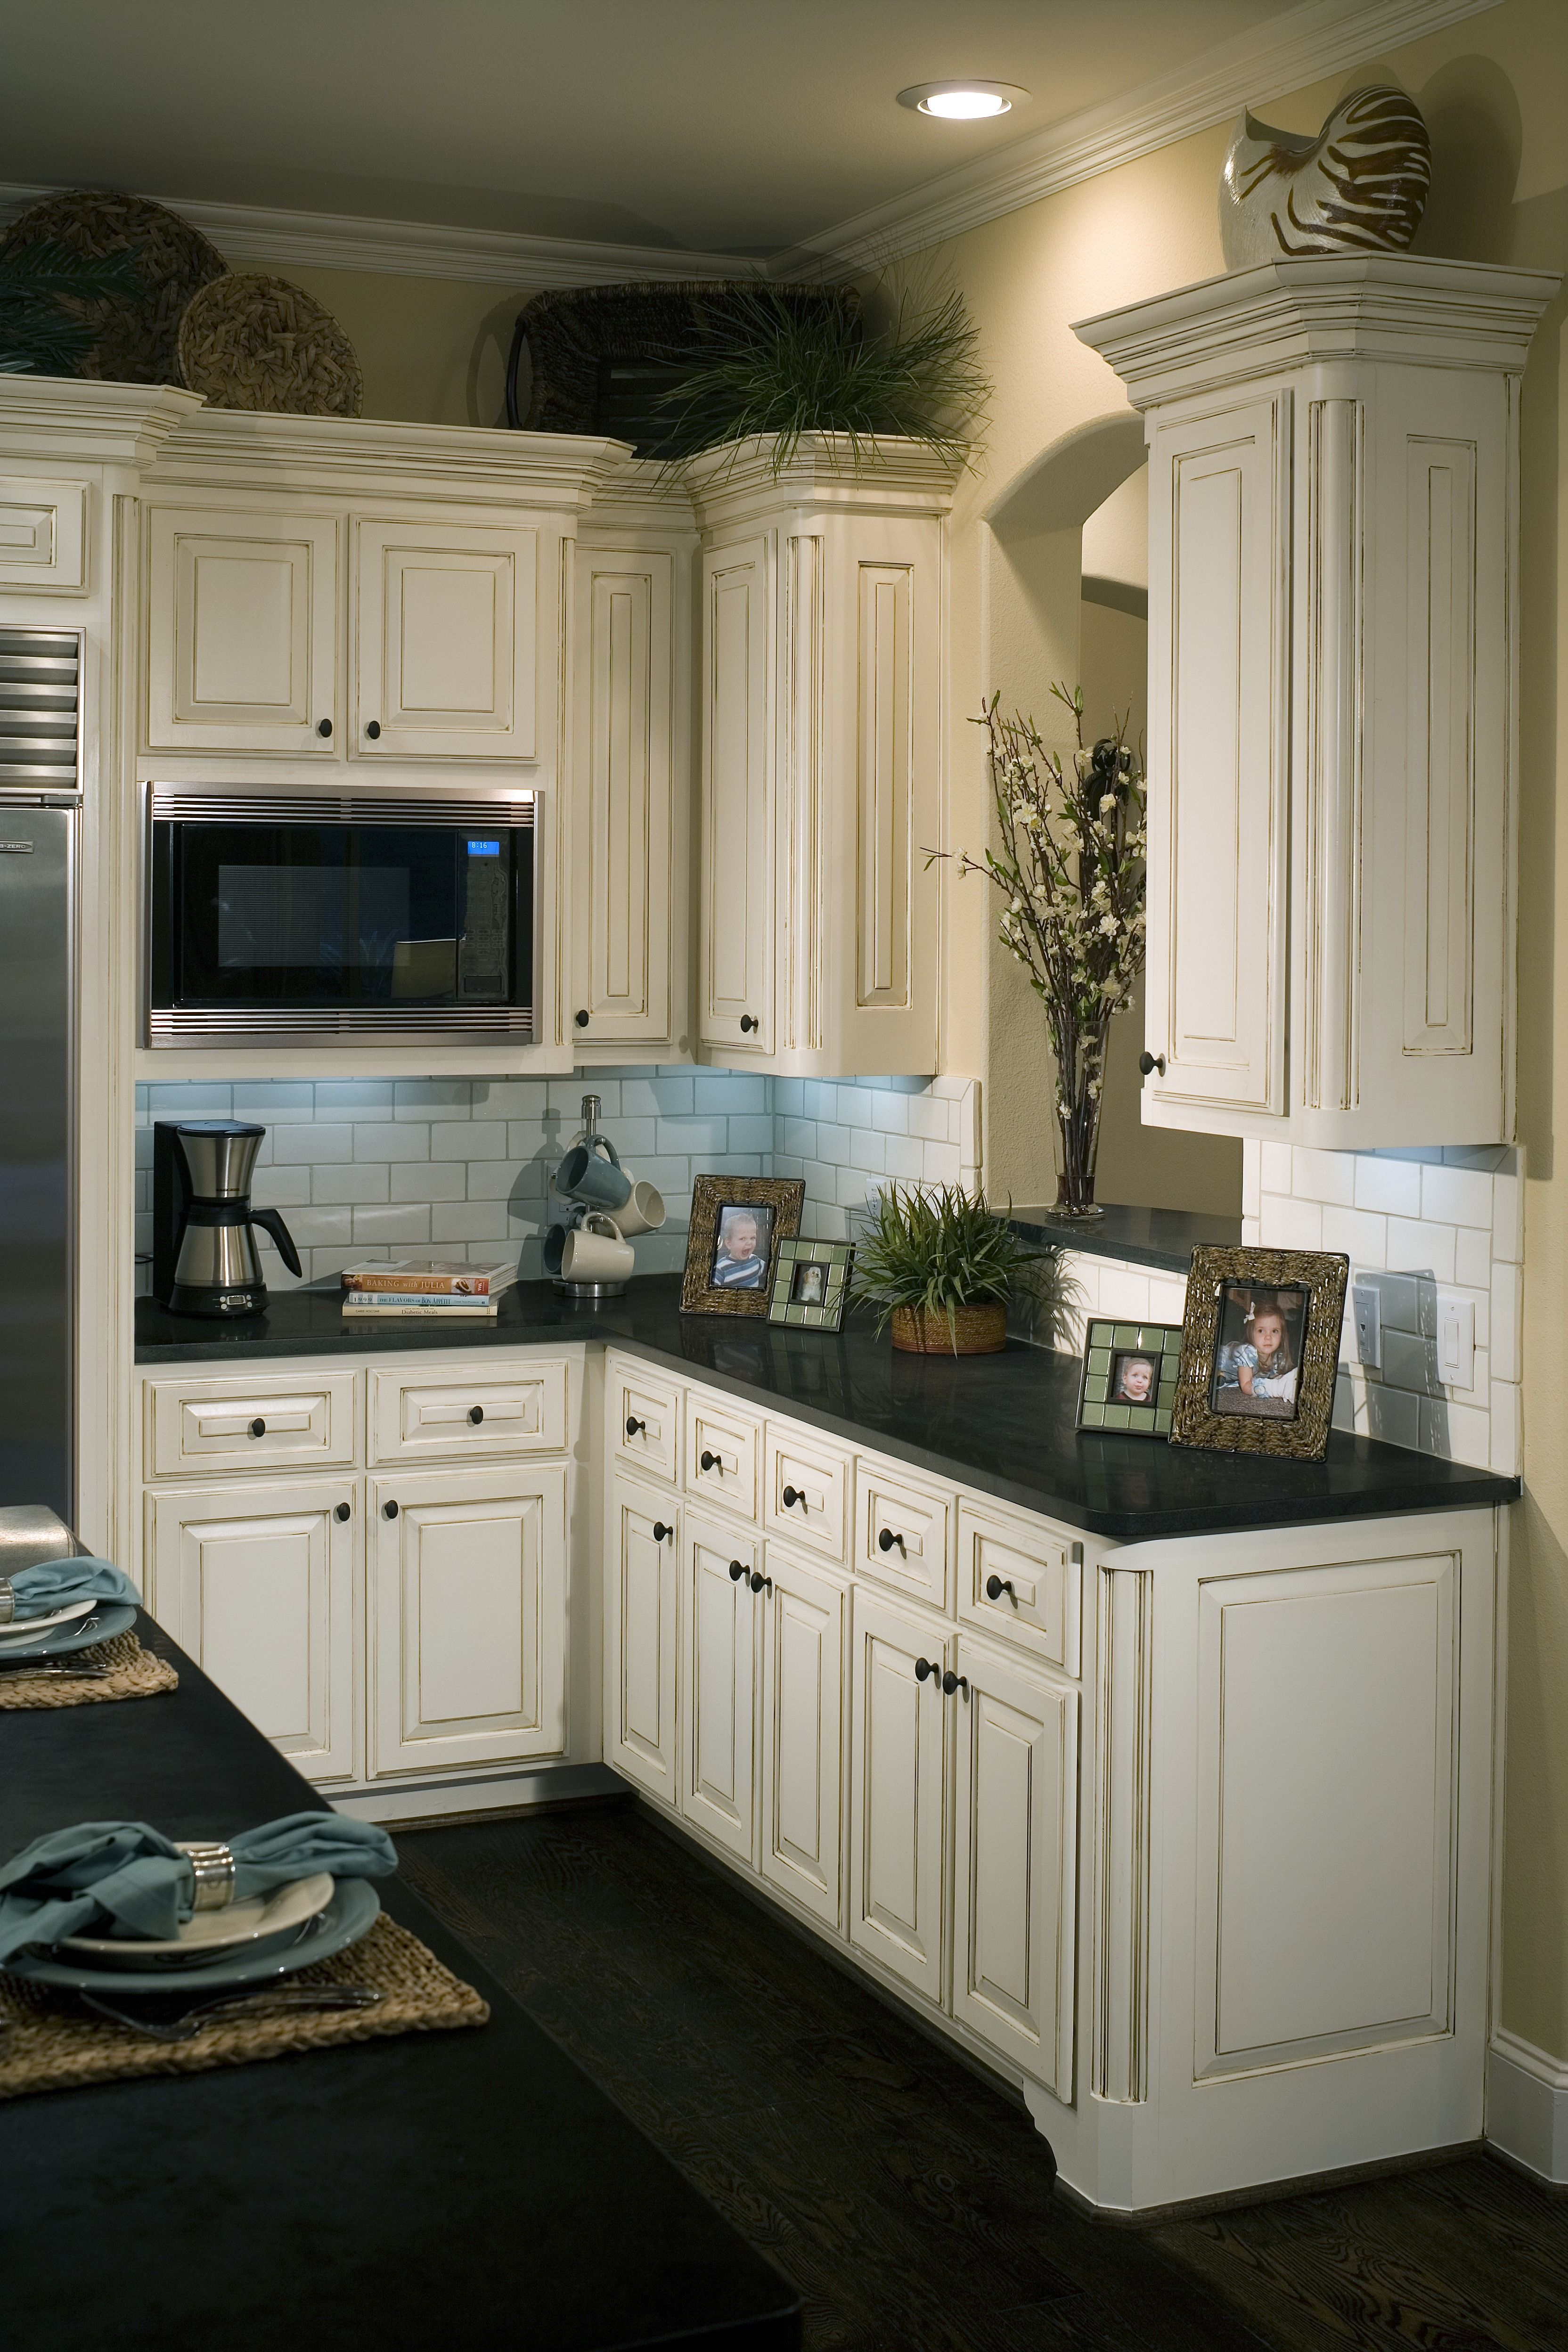 Kitchen Options Install, Reface or Refinish